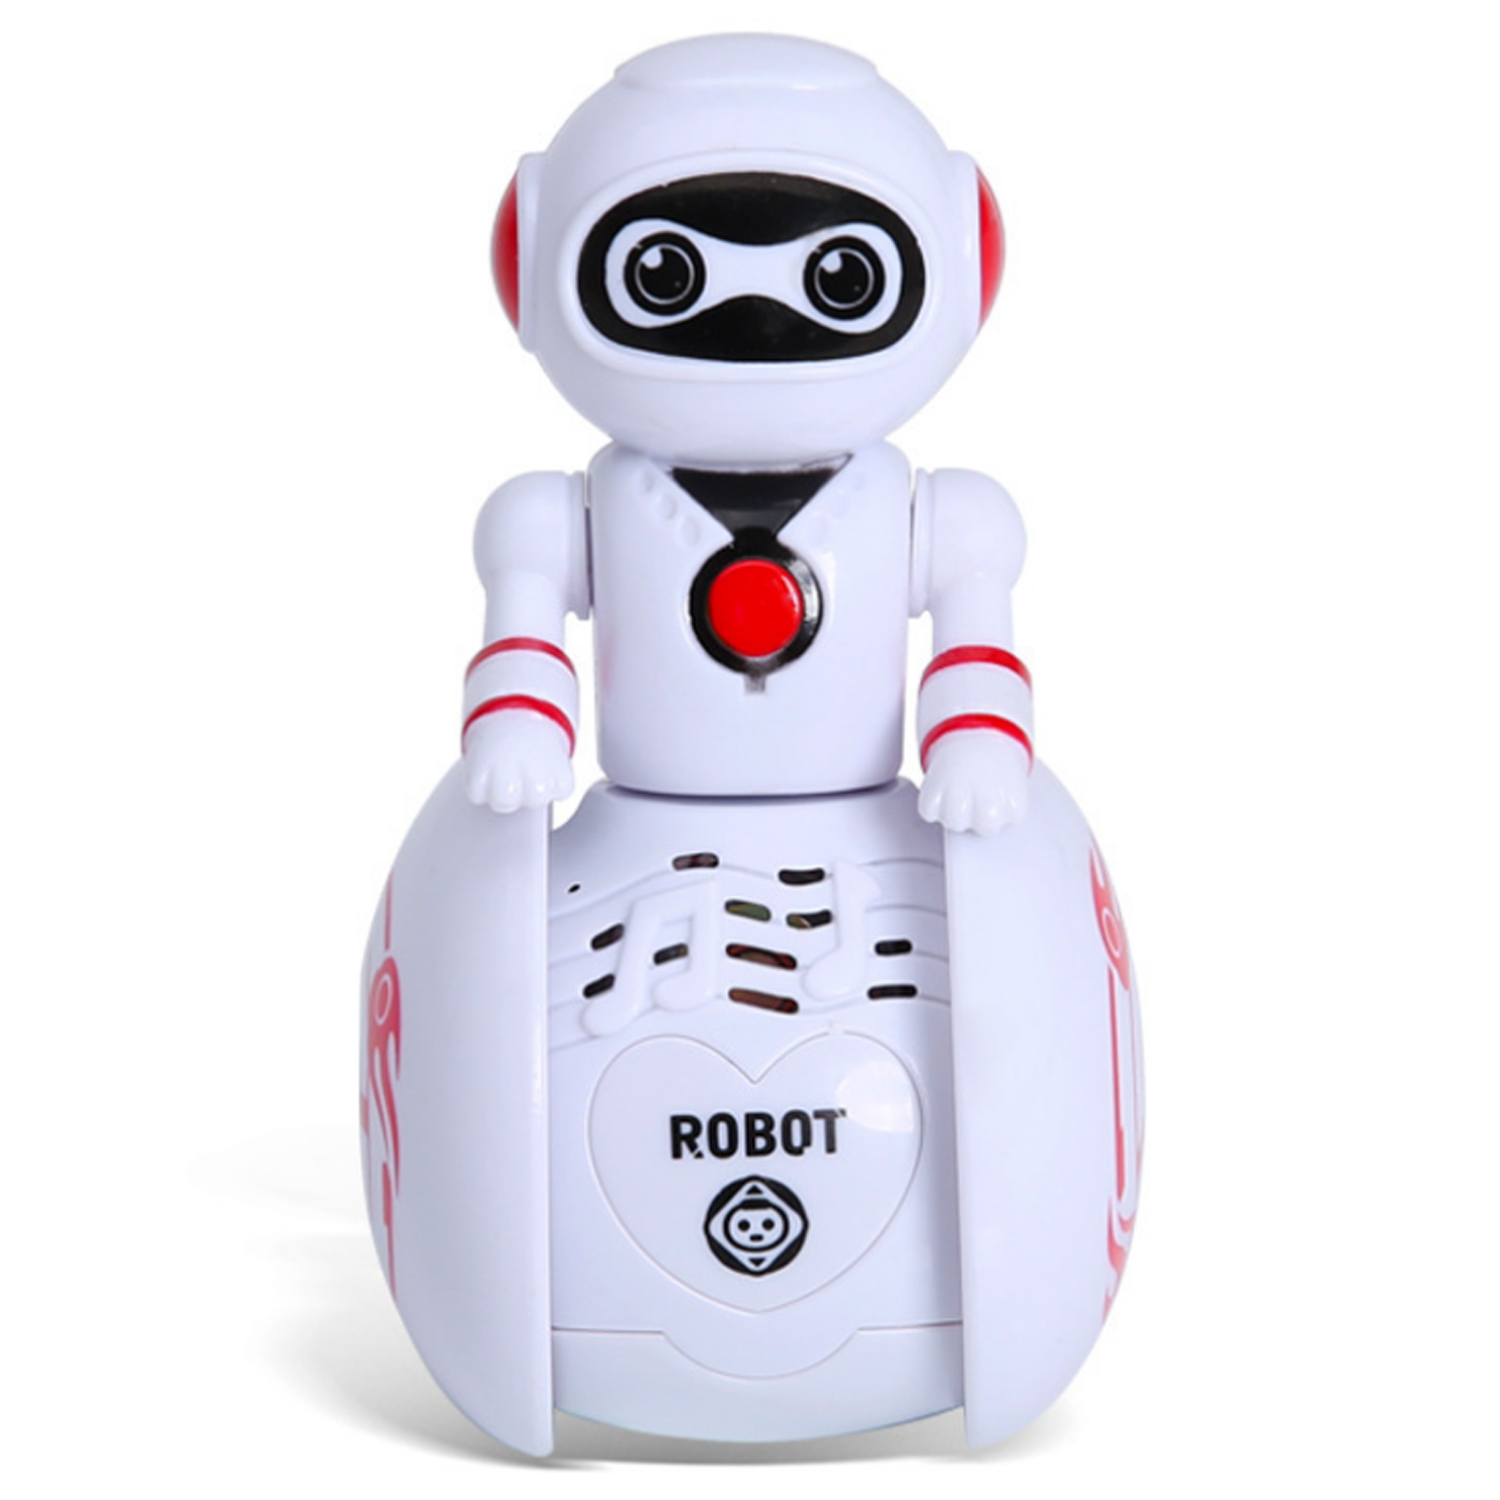 Induction Intelligent Remote Control Robot Children Educational Toys Early Kids Smart Toys With Music Talking Walking Function Consumer Electronics Smart Electronics